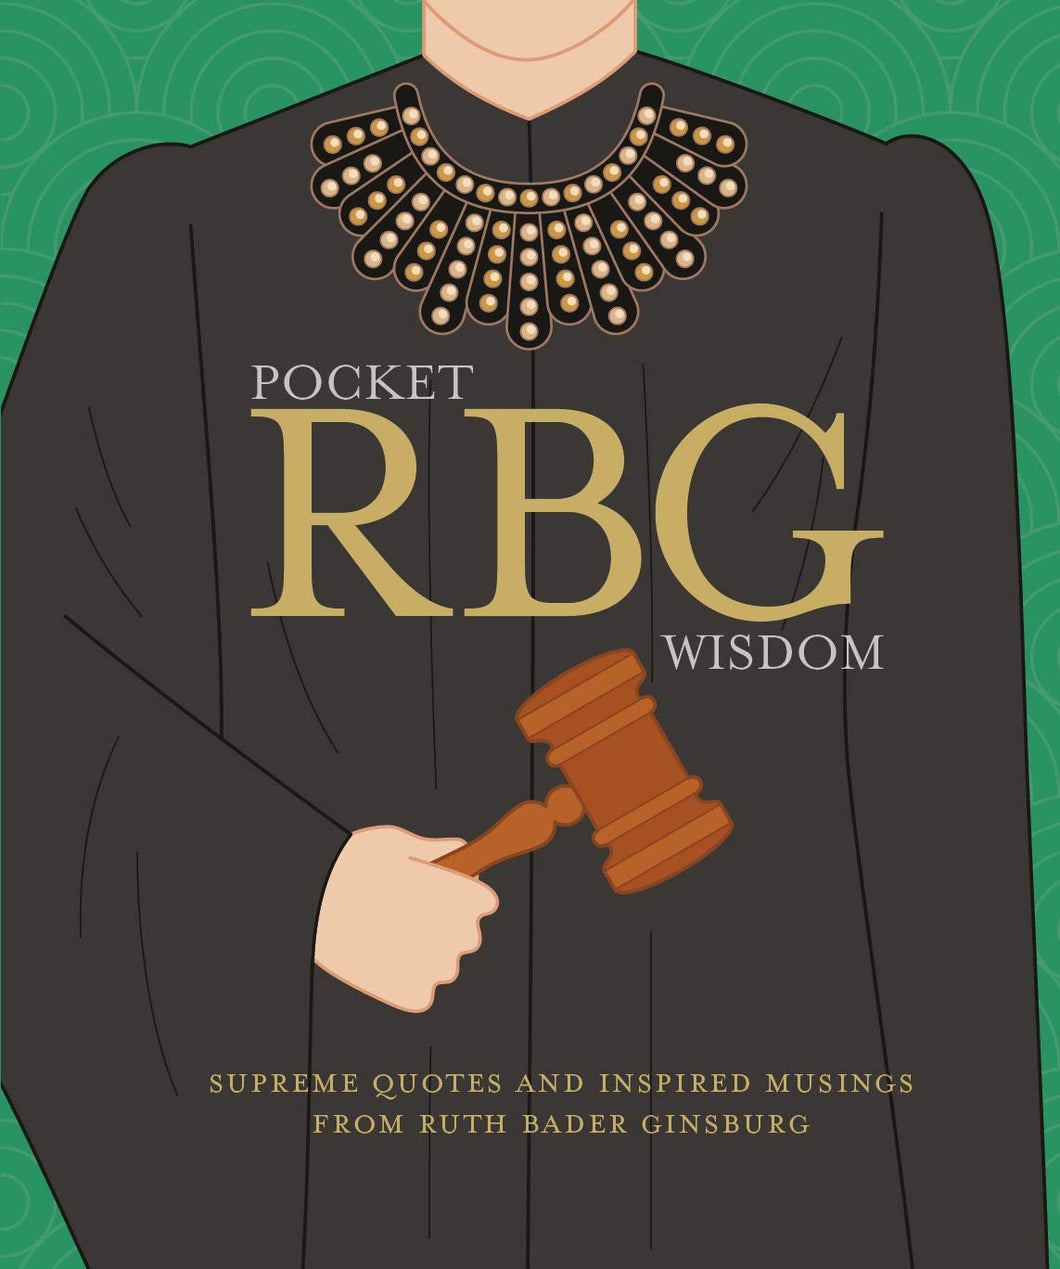 Pocket RBG Wisdom: Supreme Quotes and Inspired Musings from Ruth Bader Ginsburg Hardcover – March 12, 2019